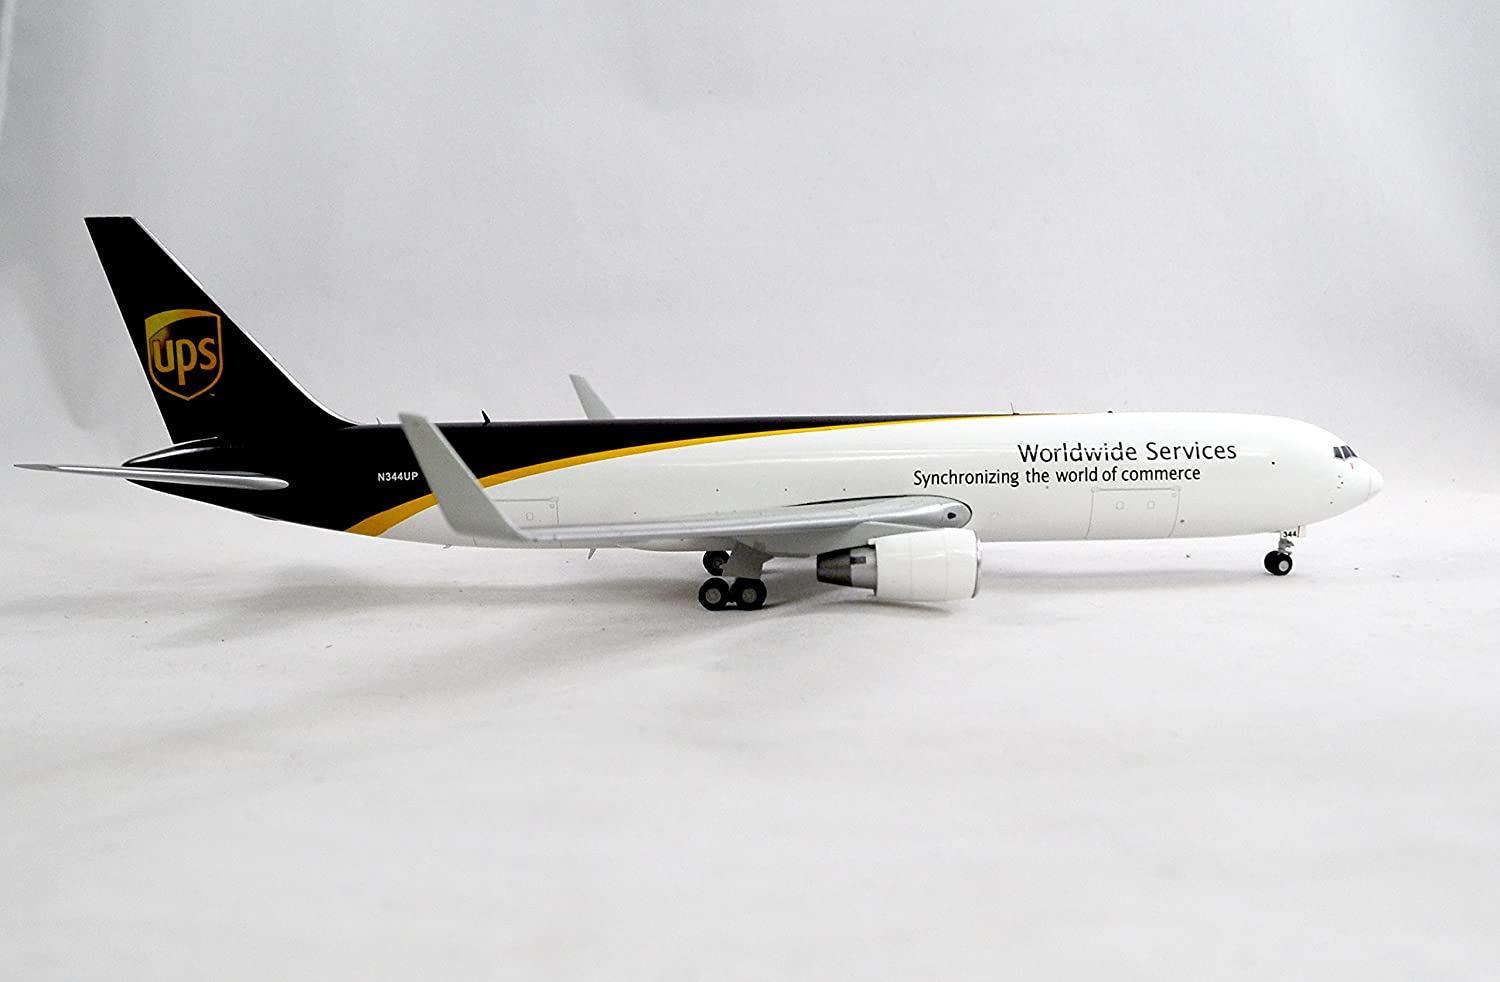 Amazon.com: GeminiJets UPS United Parcel Service Boeing 767-300F Diecast  Airplane Model N344UP With Stand 1:200 Scale Part# G2UPS470: Toys & Games